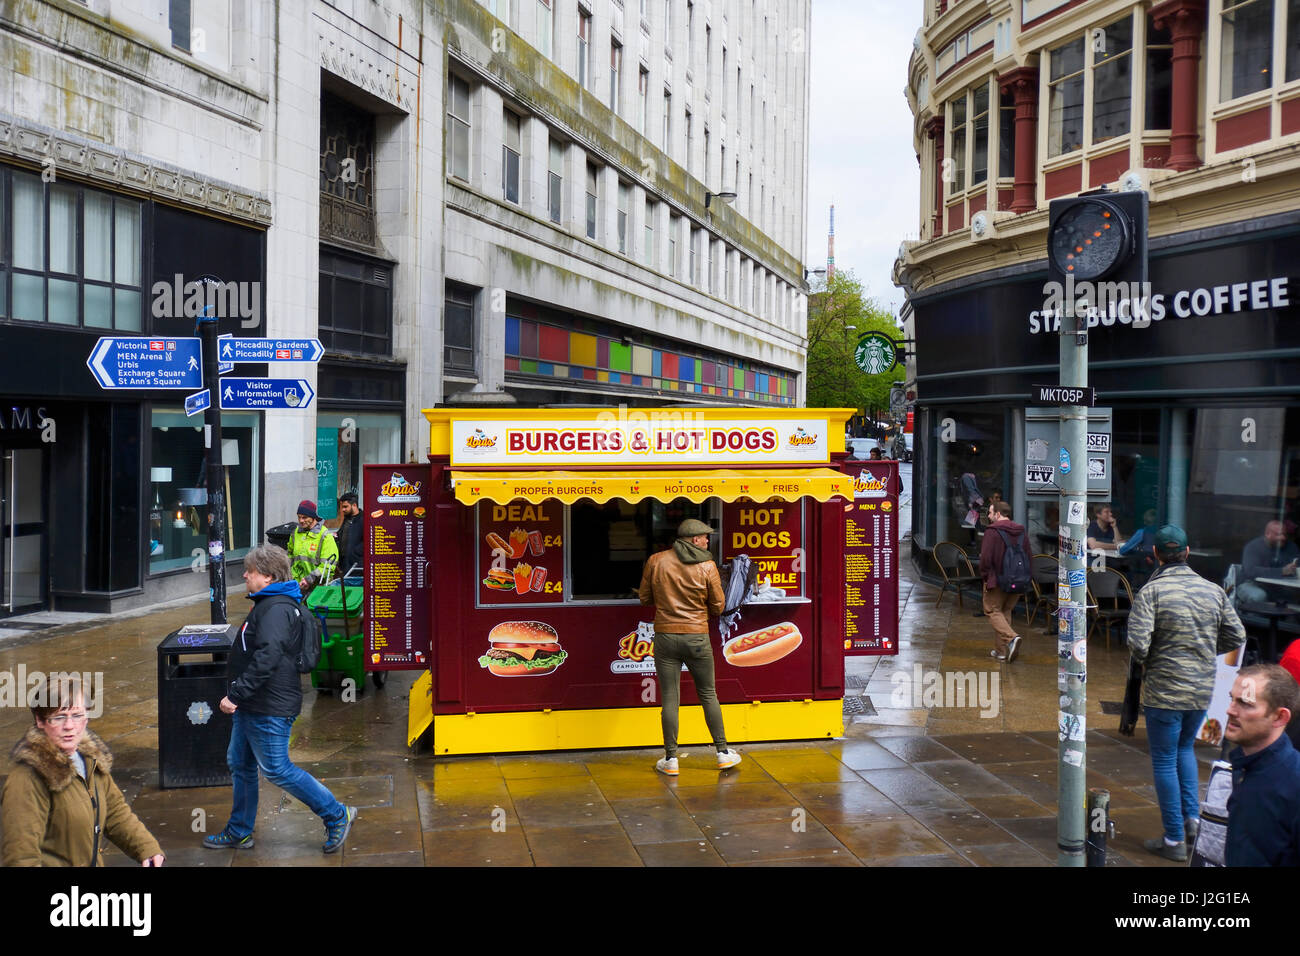 Burgar and hot dogs fast food cabin in Tib Street / Market Street, Manchester city centre close to Piccadilly Garderns. Stock Photo